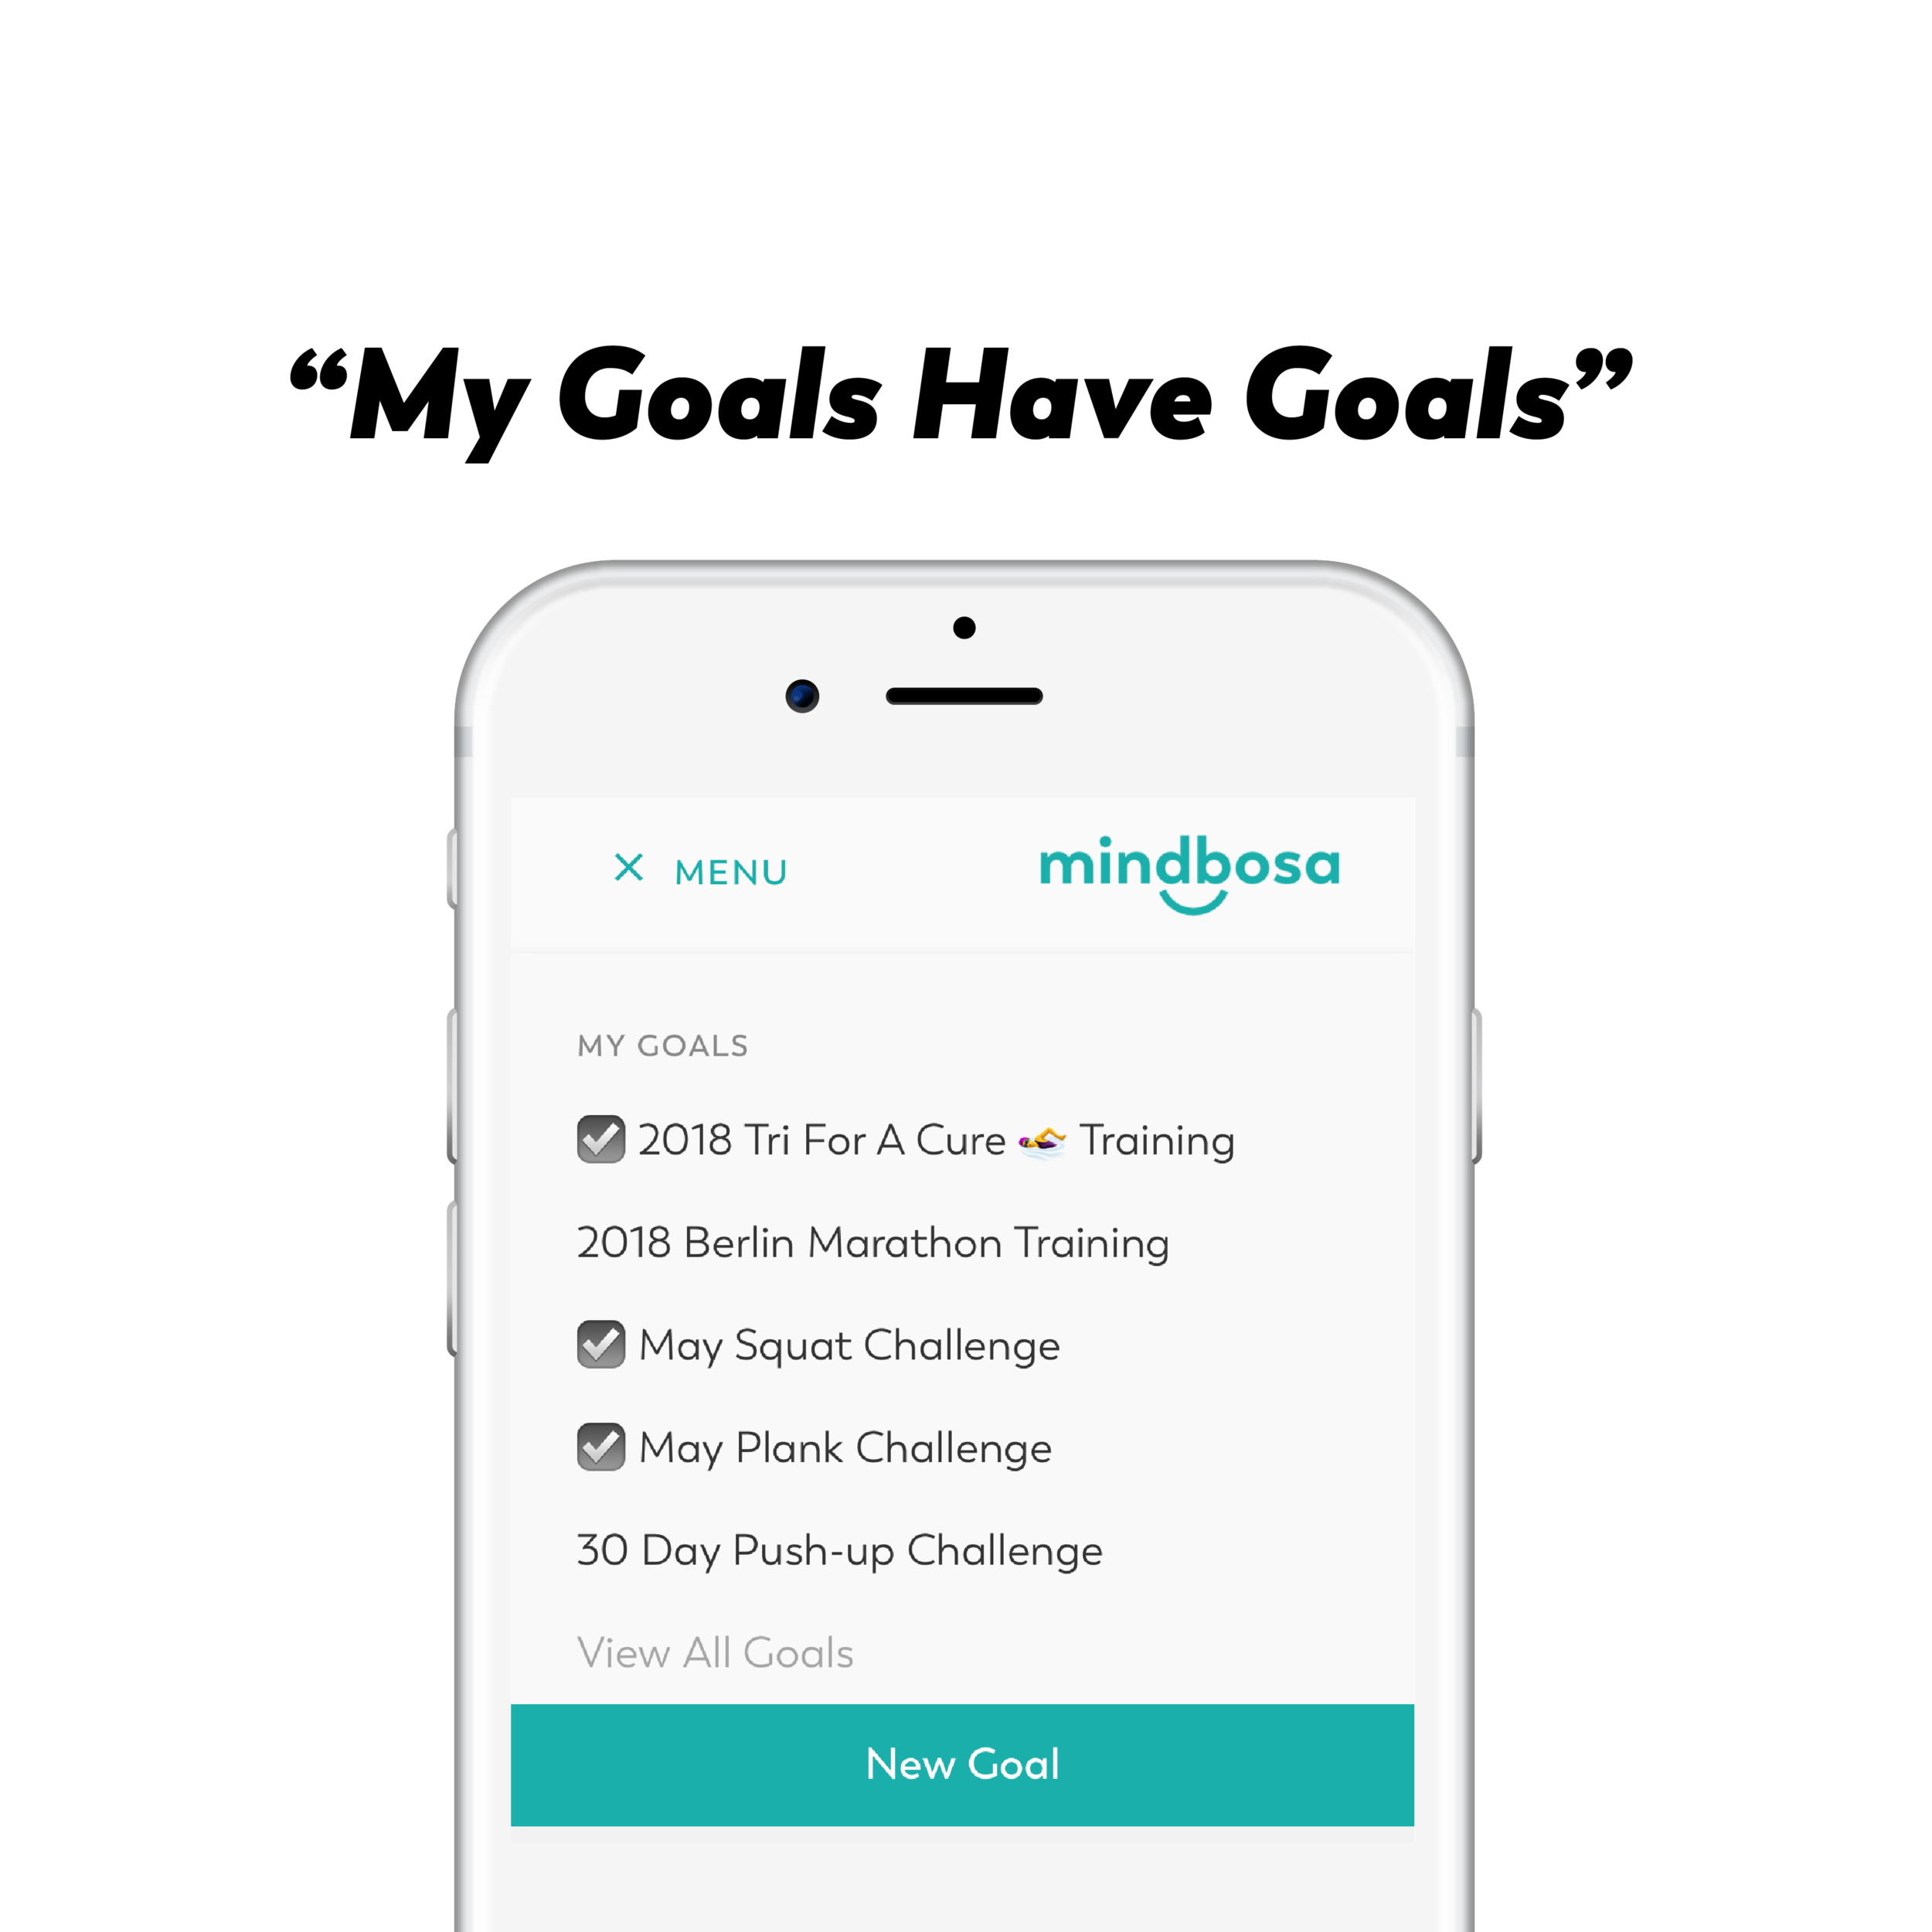 Mindbosa (Mind, Body, Save) is a new concept. We are connecting personal gain with personal growth and doing so through mindfulness. When you track goals on  our web app , you are not only consciously working towards a better self, but also building motivation and reward by saving money. This is an exercise in mindfulness. We are confident while using Mindbosa you will enhance your overall wellbeing.